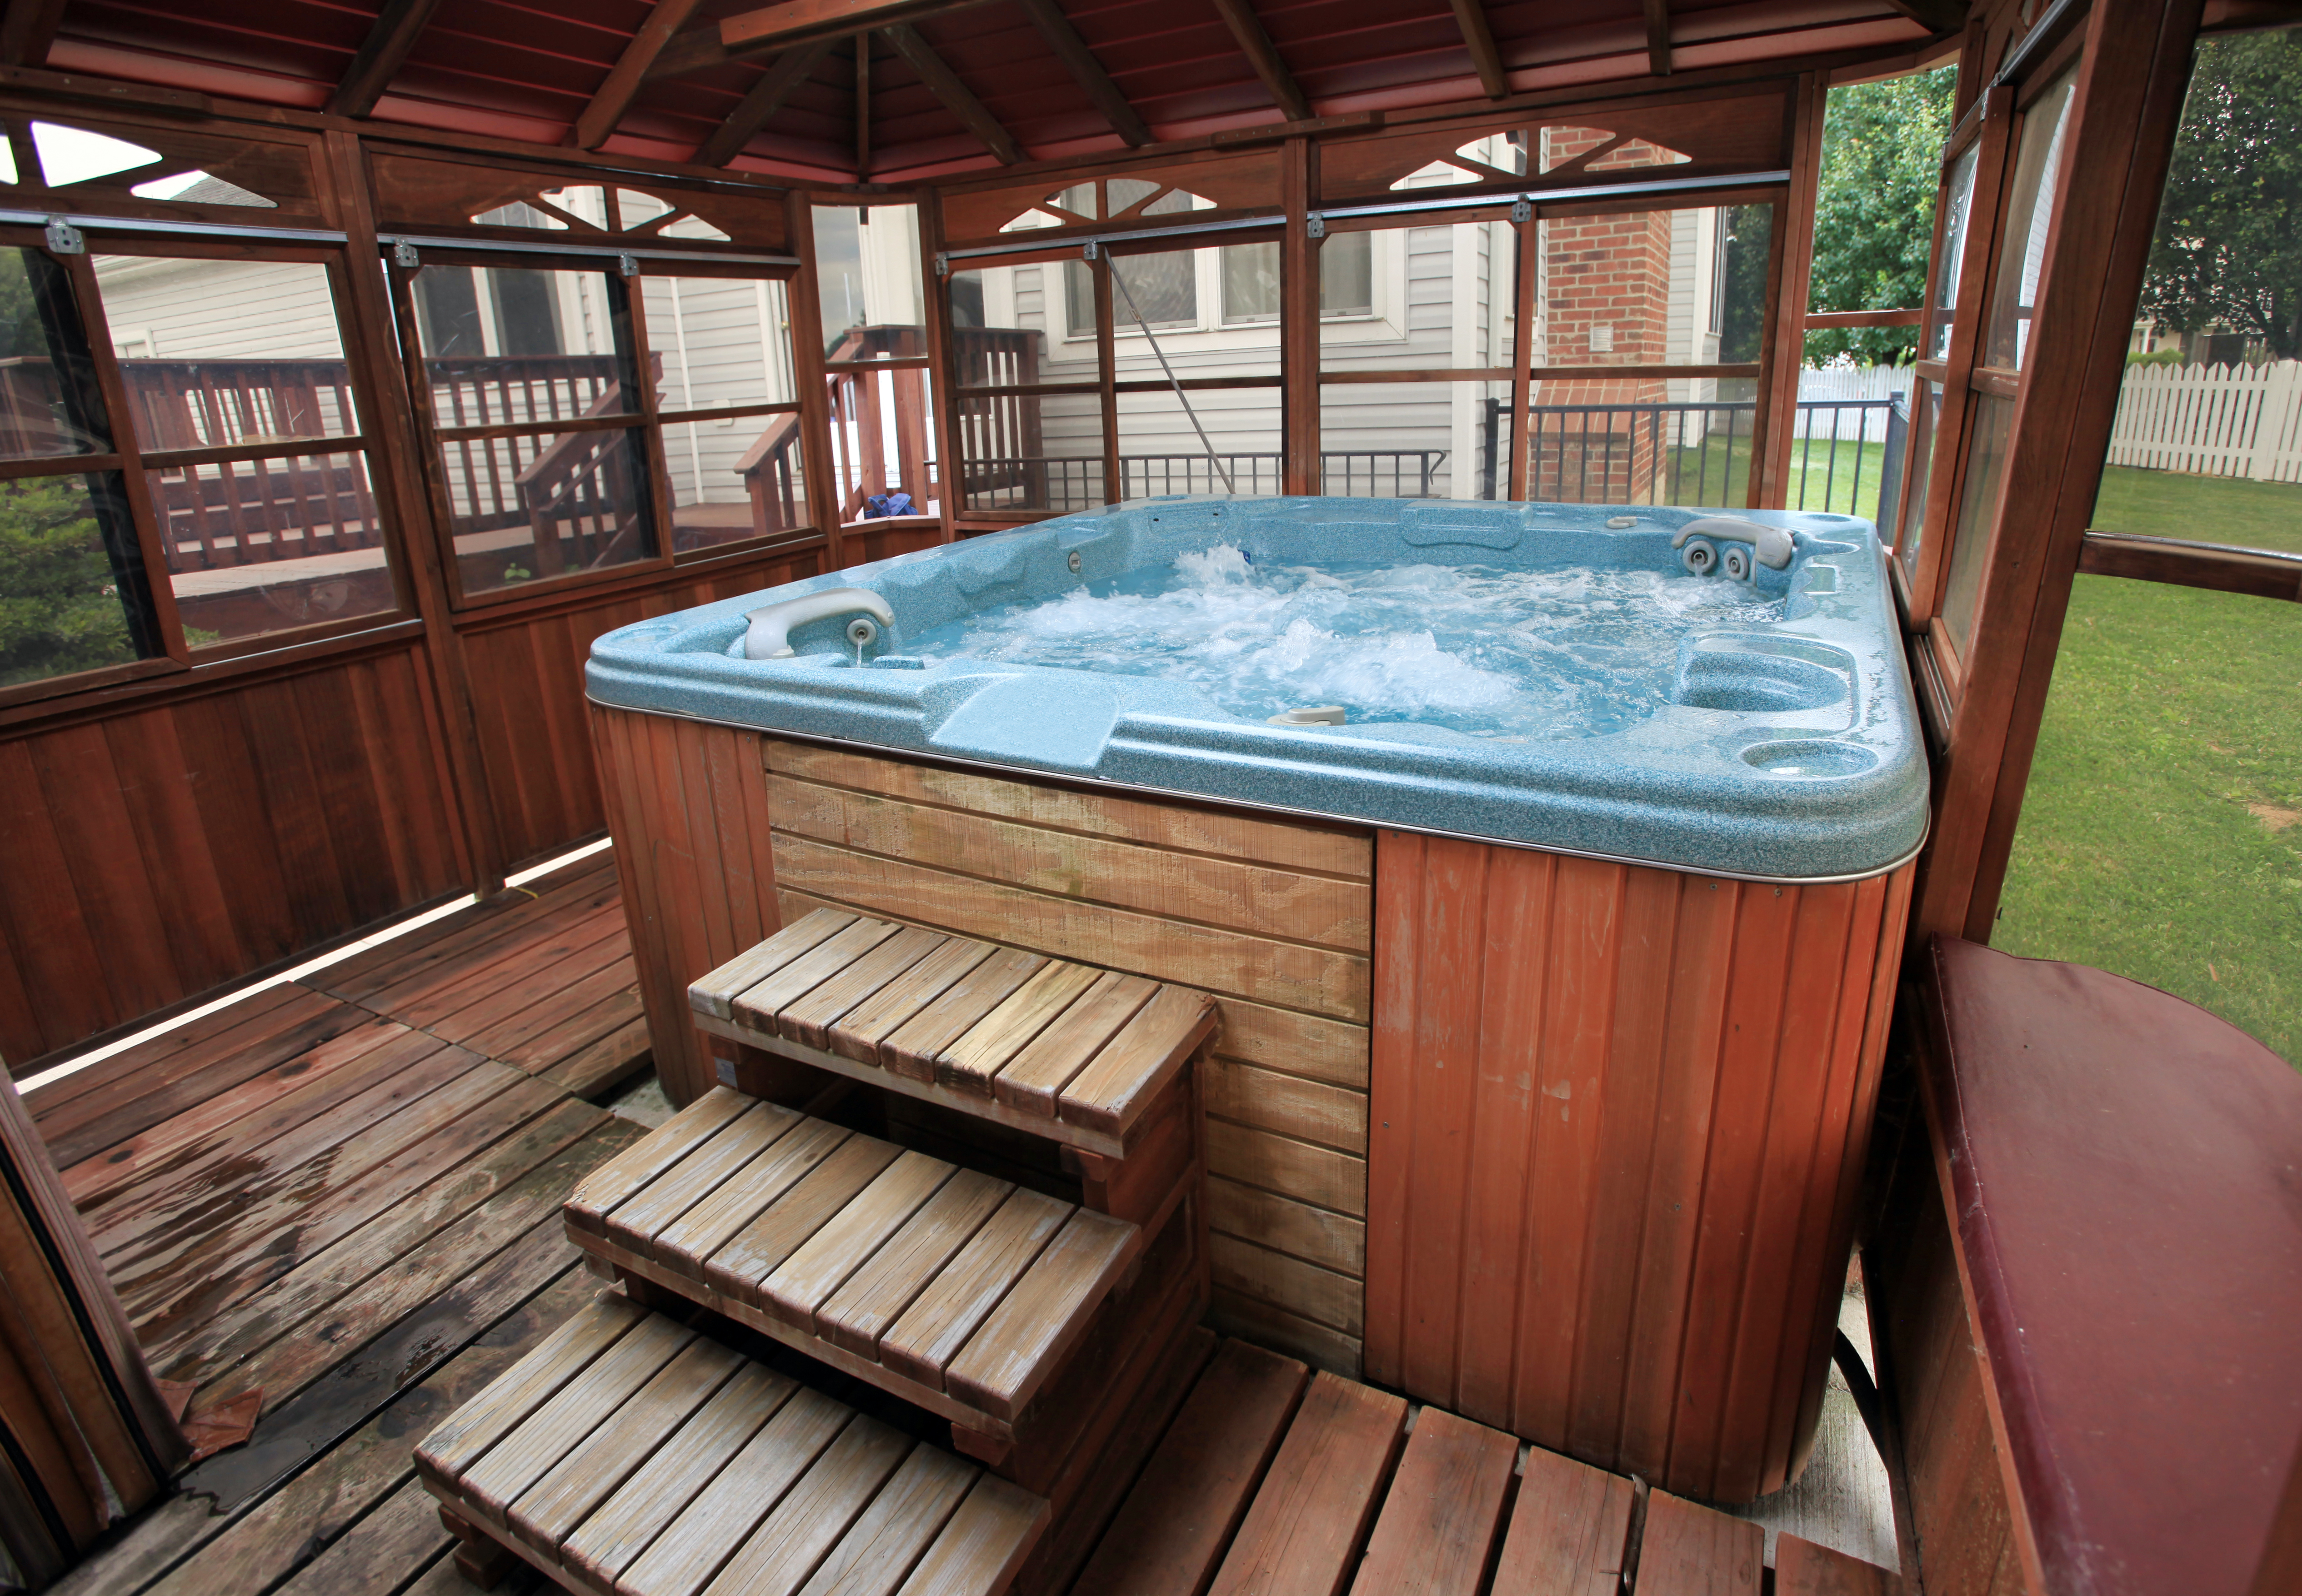 Turn off the filter or heater on your pool or spa overnight.